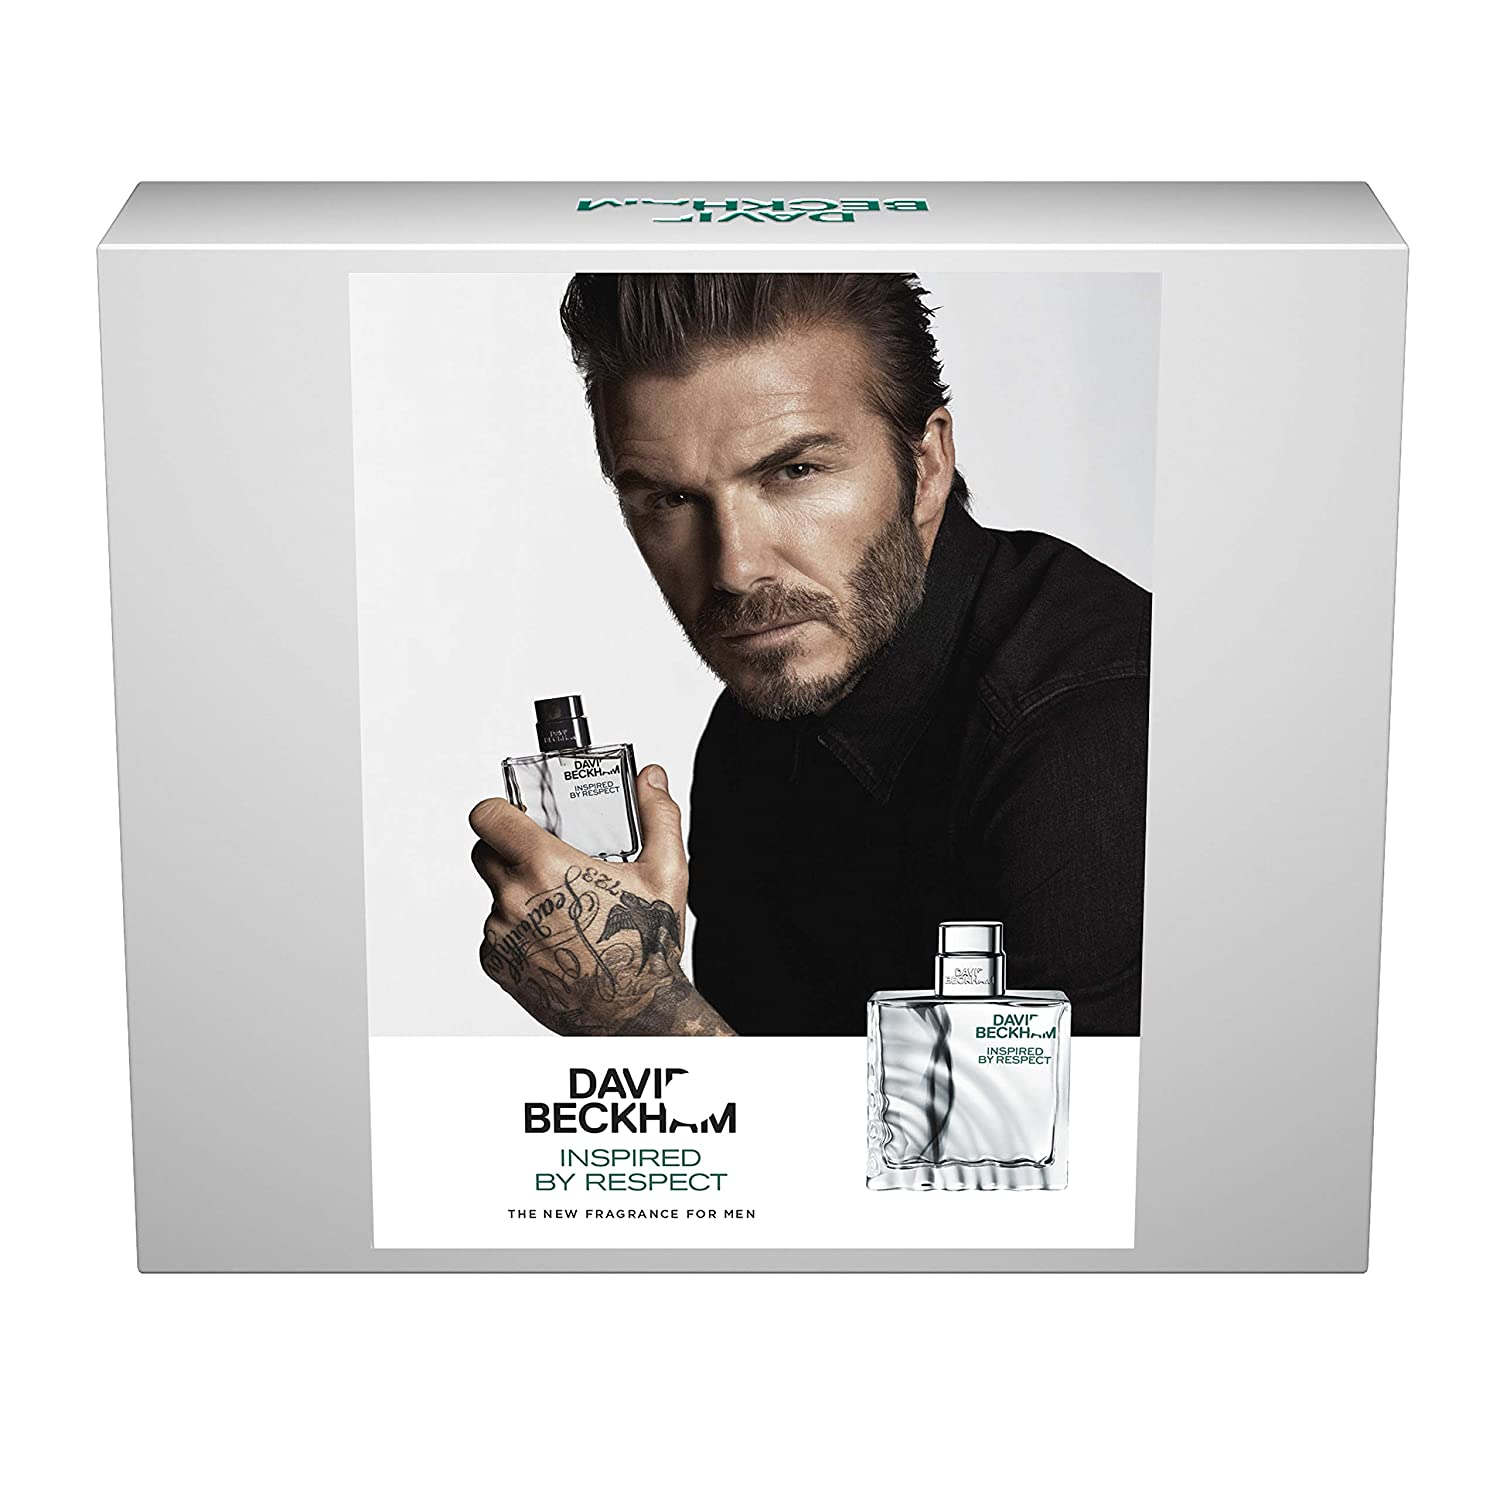 Beckham Inspired by Respect Gift Set EDT and Shower Gel, 40/200 ml Coty 32889697000